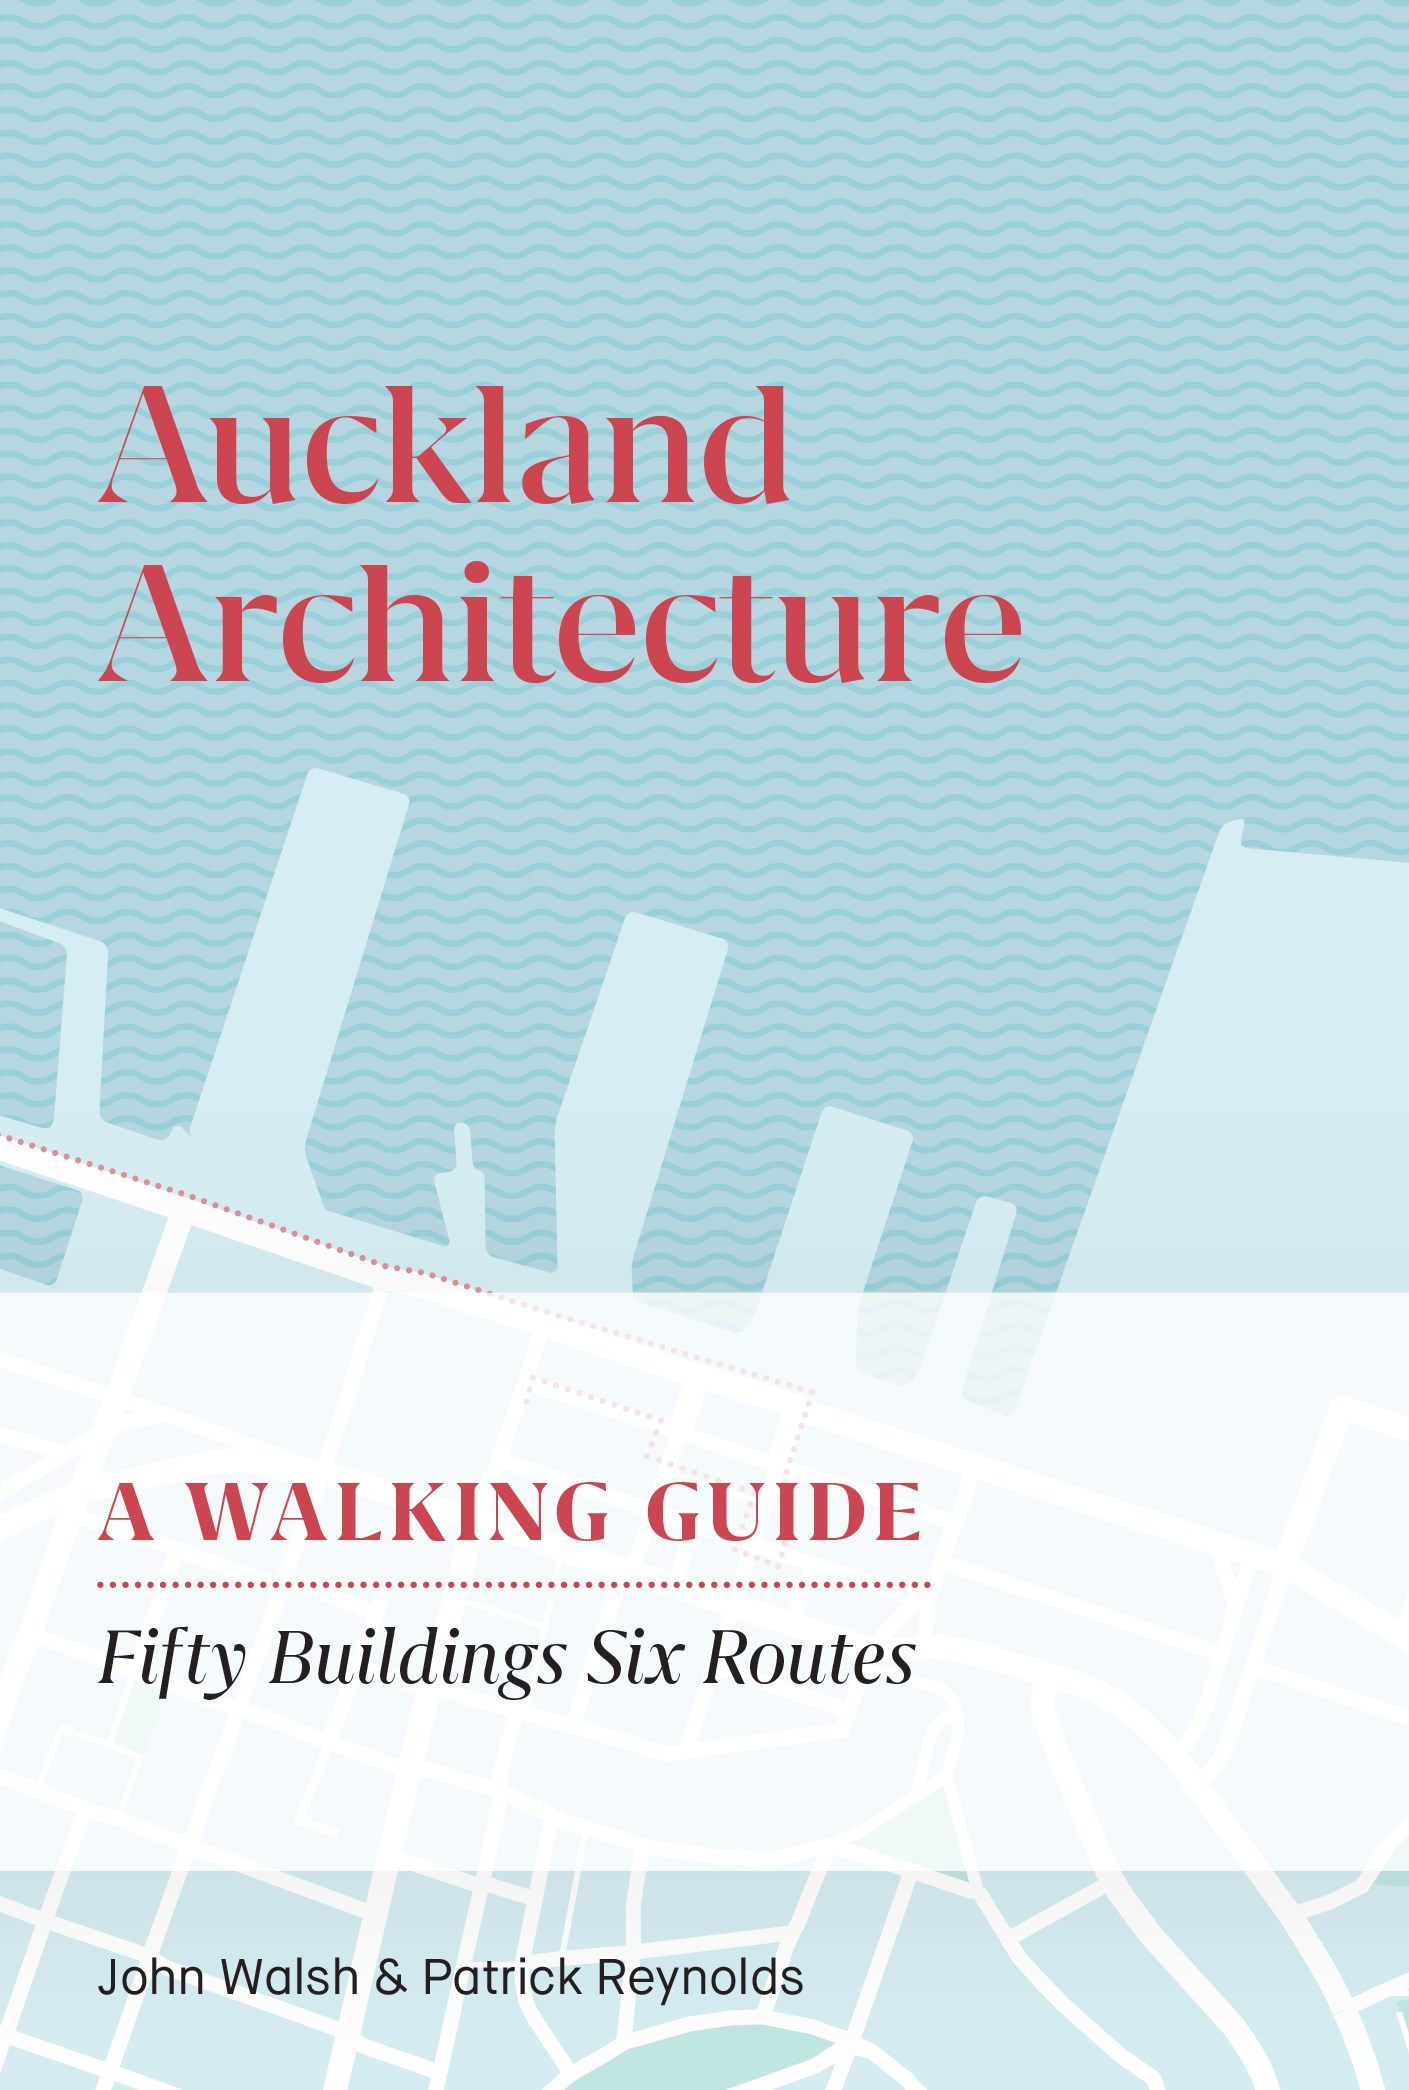 book cover for Auckland Architecture